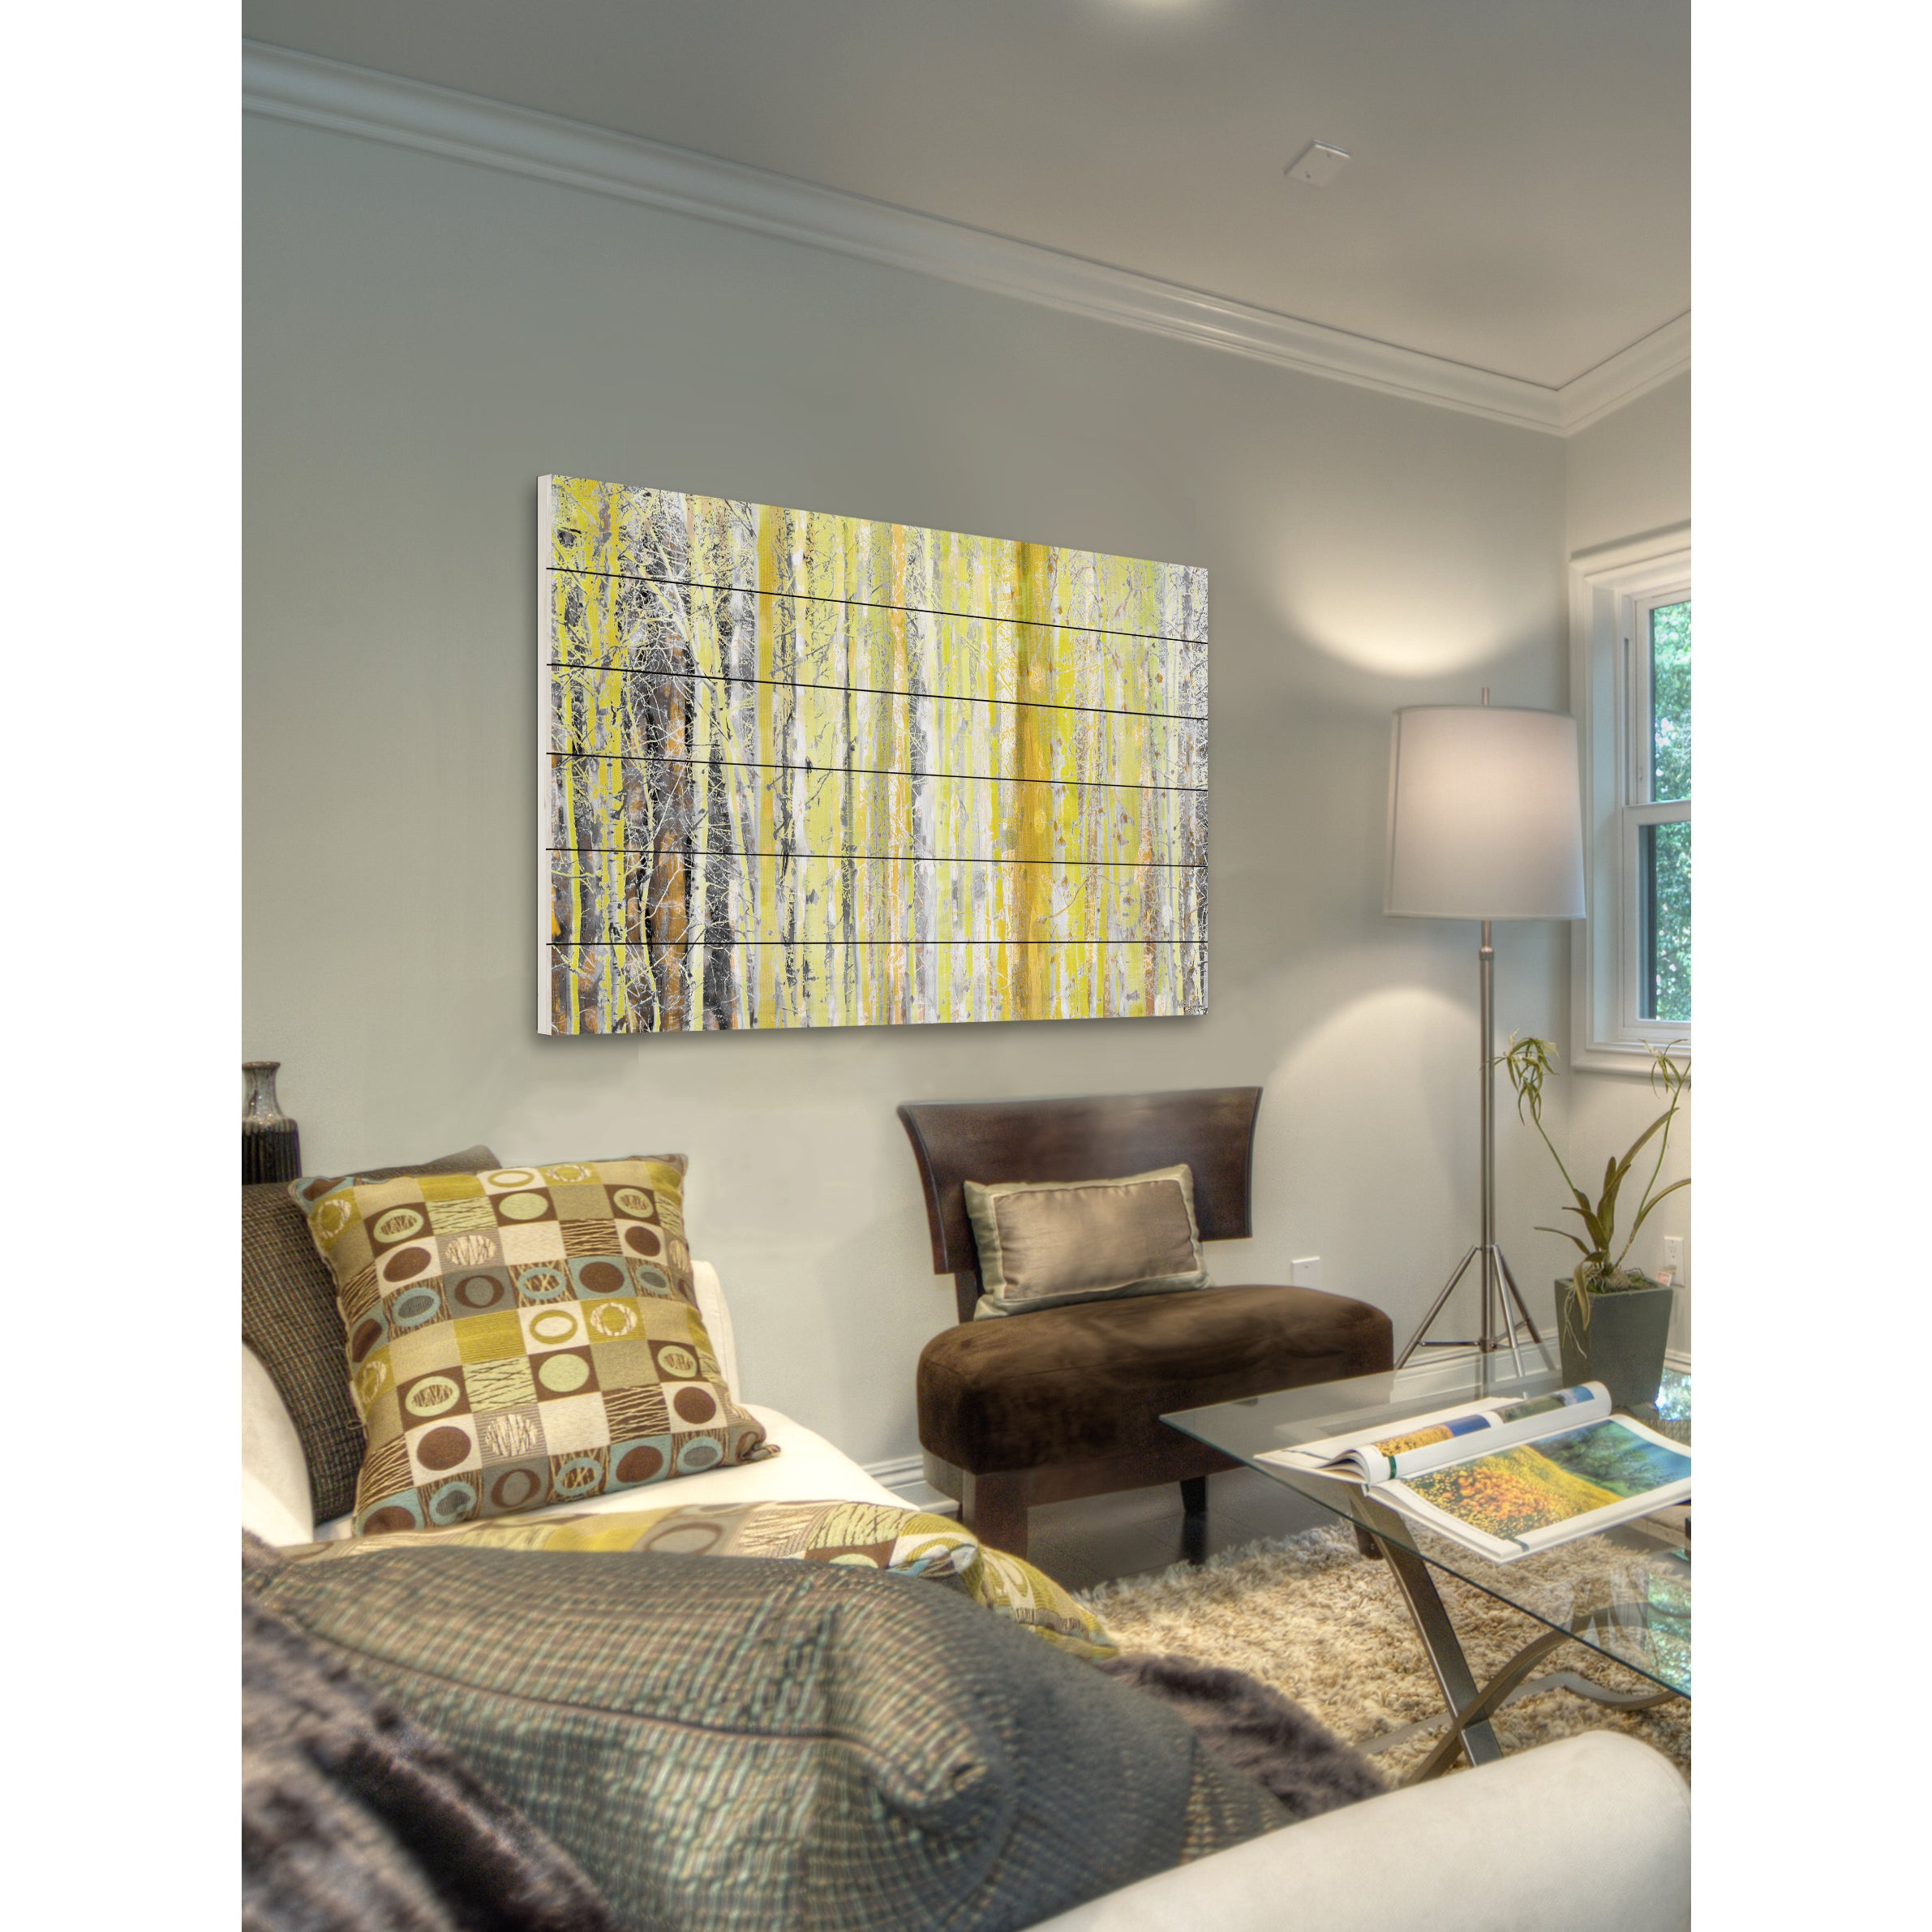 Aspen white painted bedroom Tombates Shop Parvez Taj aspen Forest 2 Painting Print On White Wood On Sale Free Shipping Today Overstockcom 10331748 Overstockcom Shop Parvez Taj aspen Forest 2 Painting Print On White Wood On